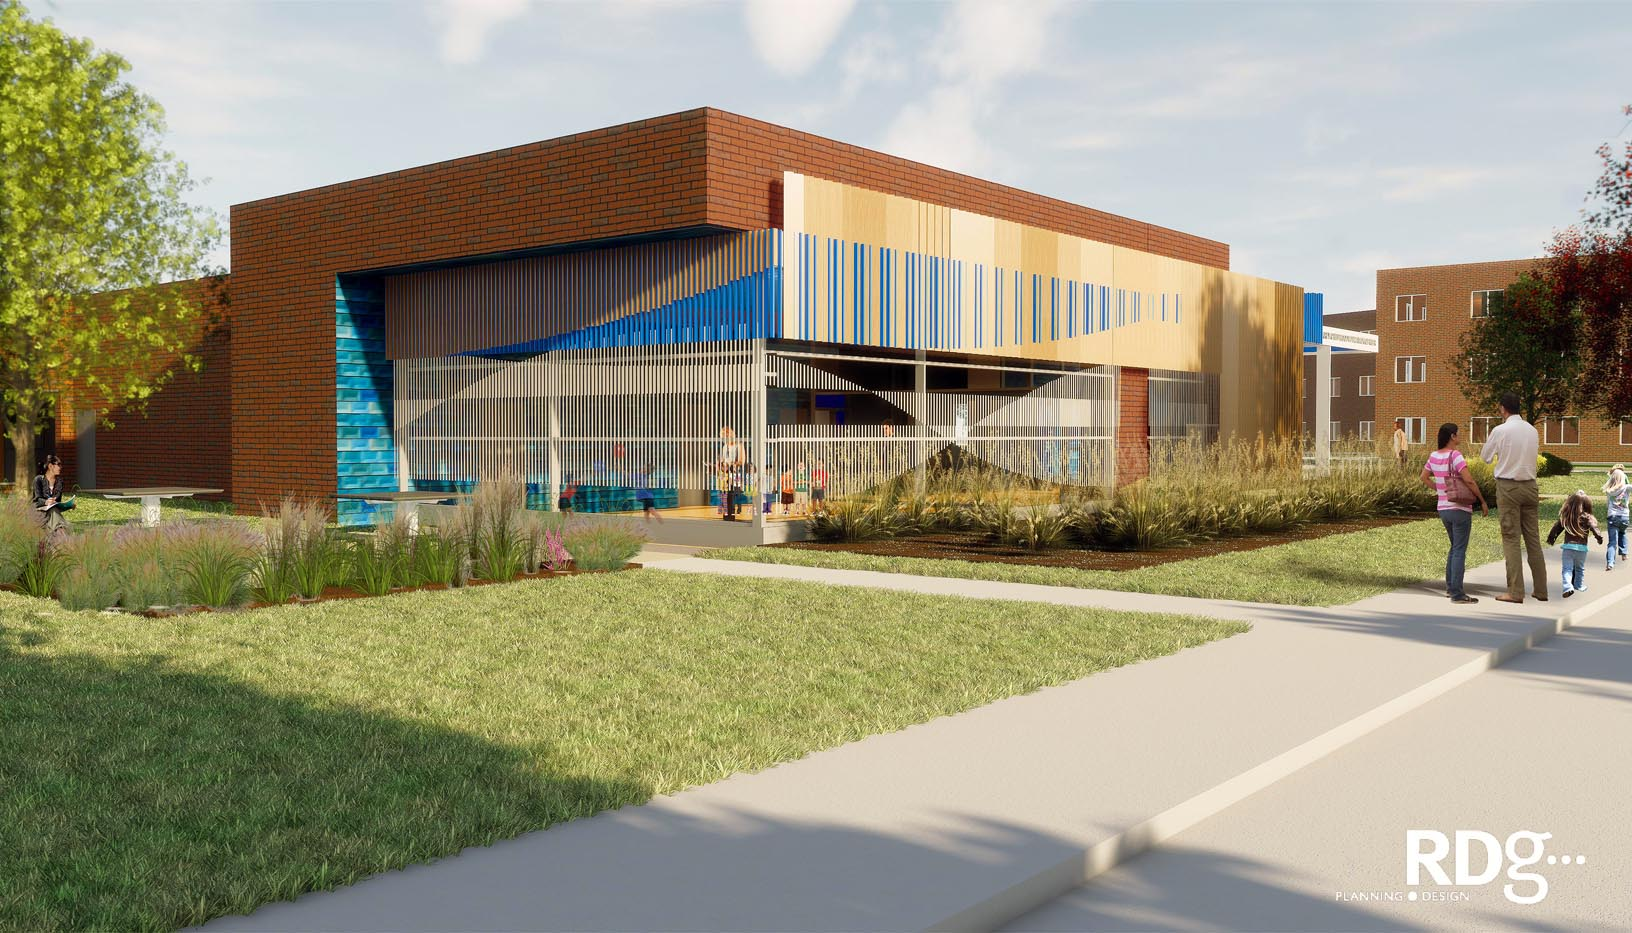 The LaVonne Kopecky Plambeck Early Childhood Education Center at the University of Nebraska at Kearney is the first academic footprint on UNK's University Village development. It will become a model for early childhood education, early childhood educator preparation and research.